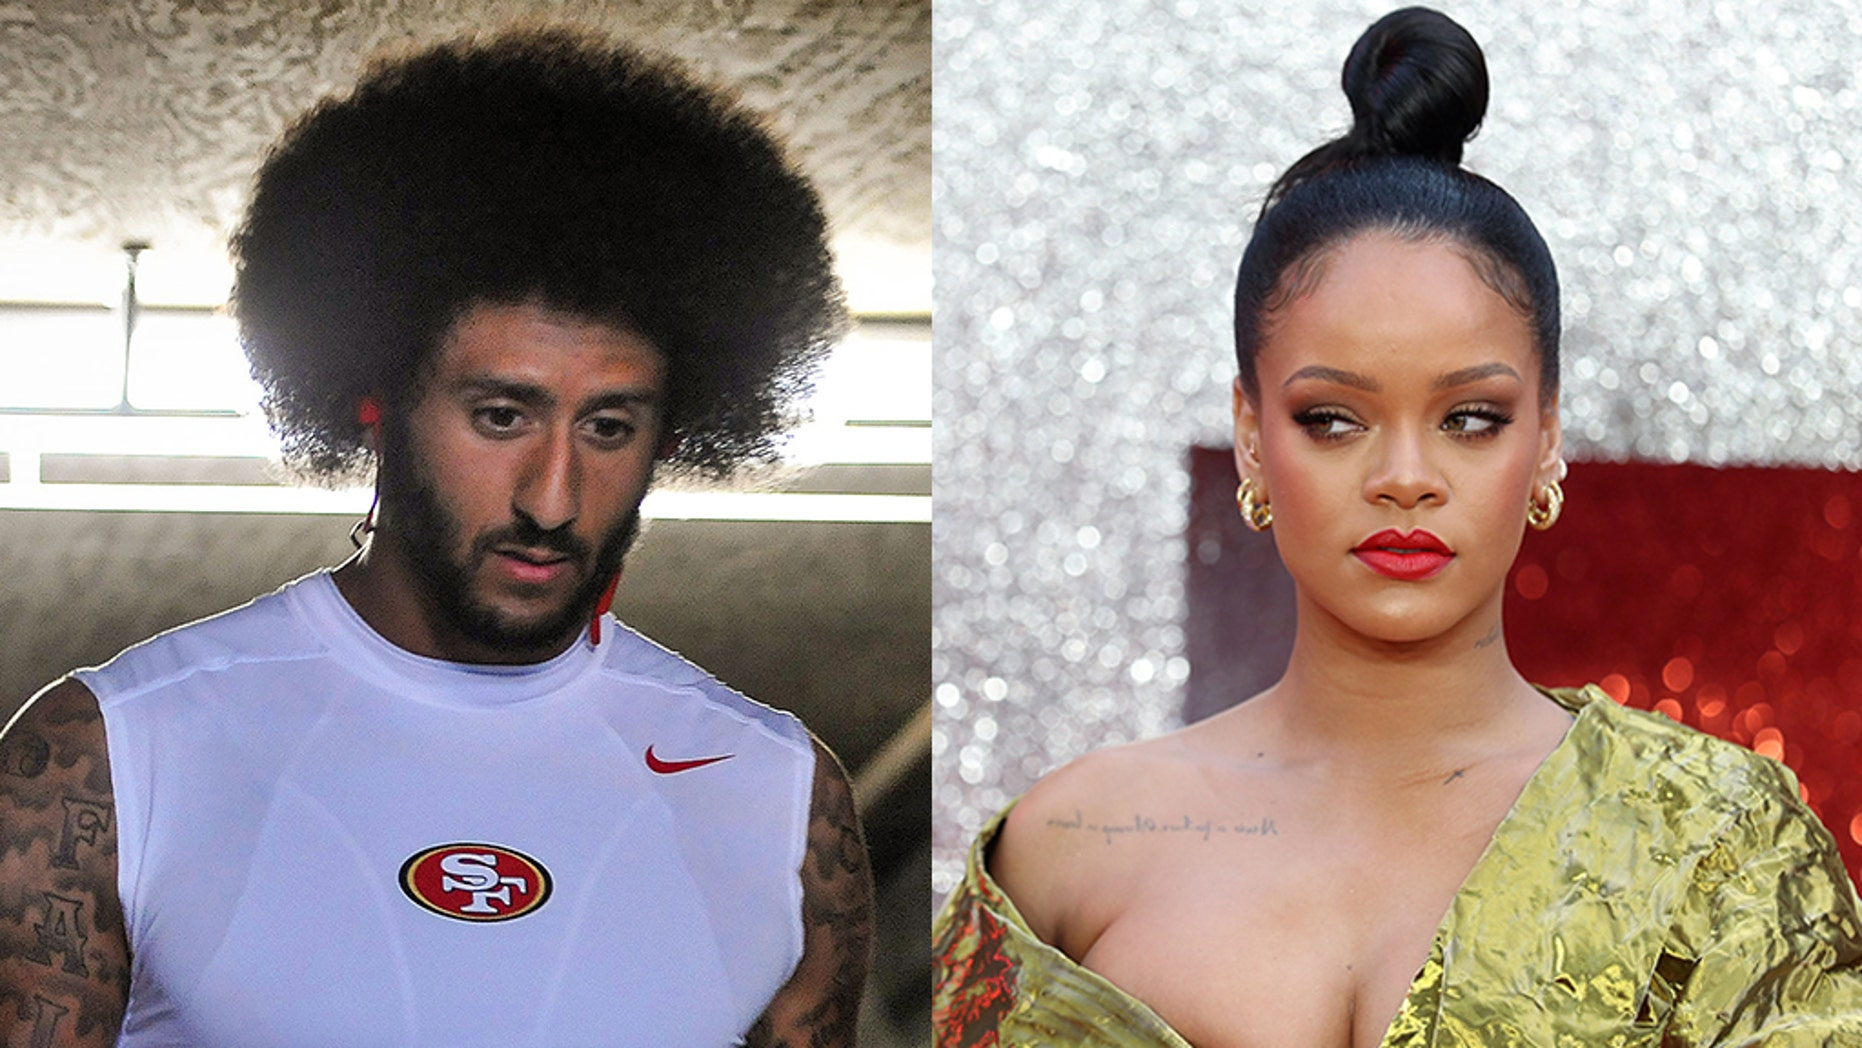 Rihanna turned down NFL Halftime Show in solidarity with Colin Kaepernick